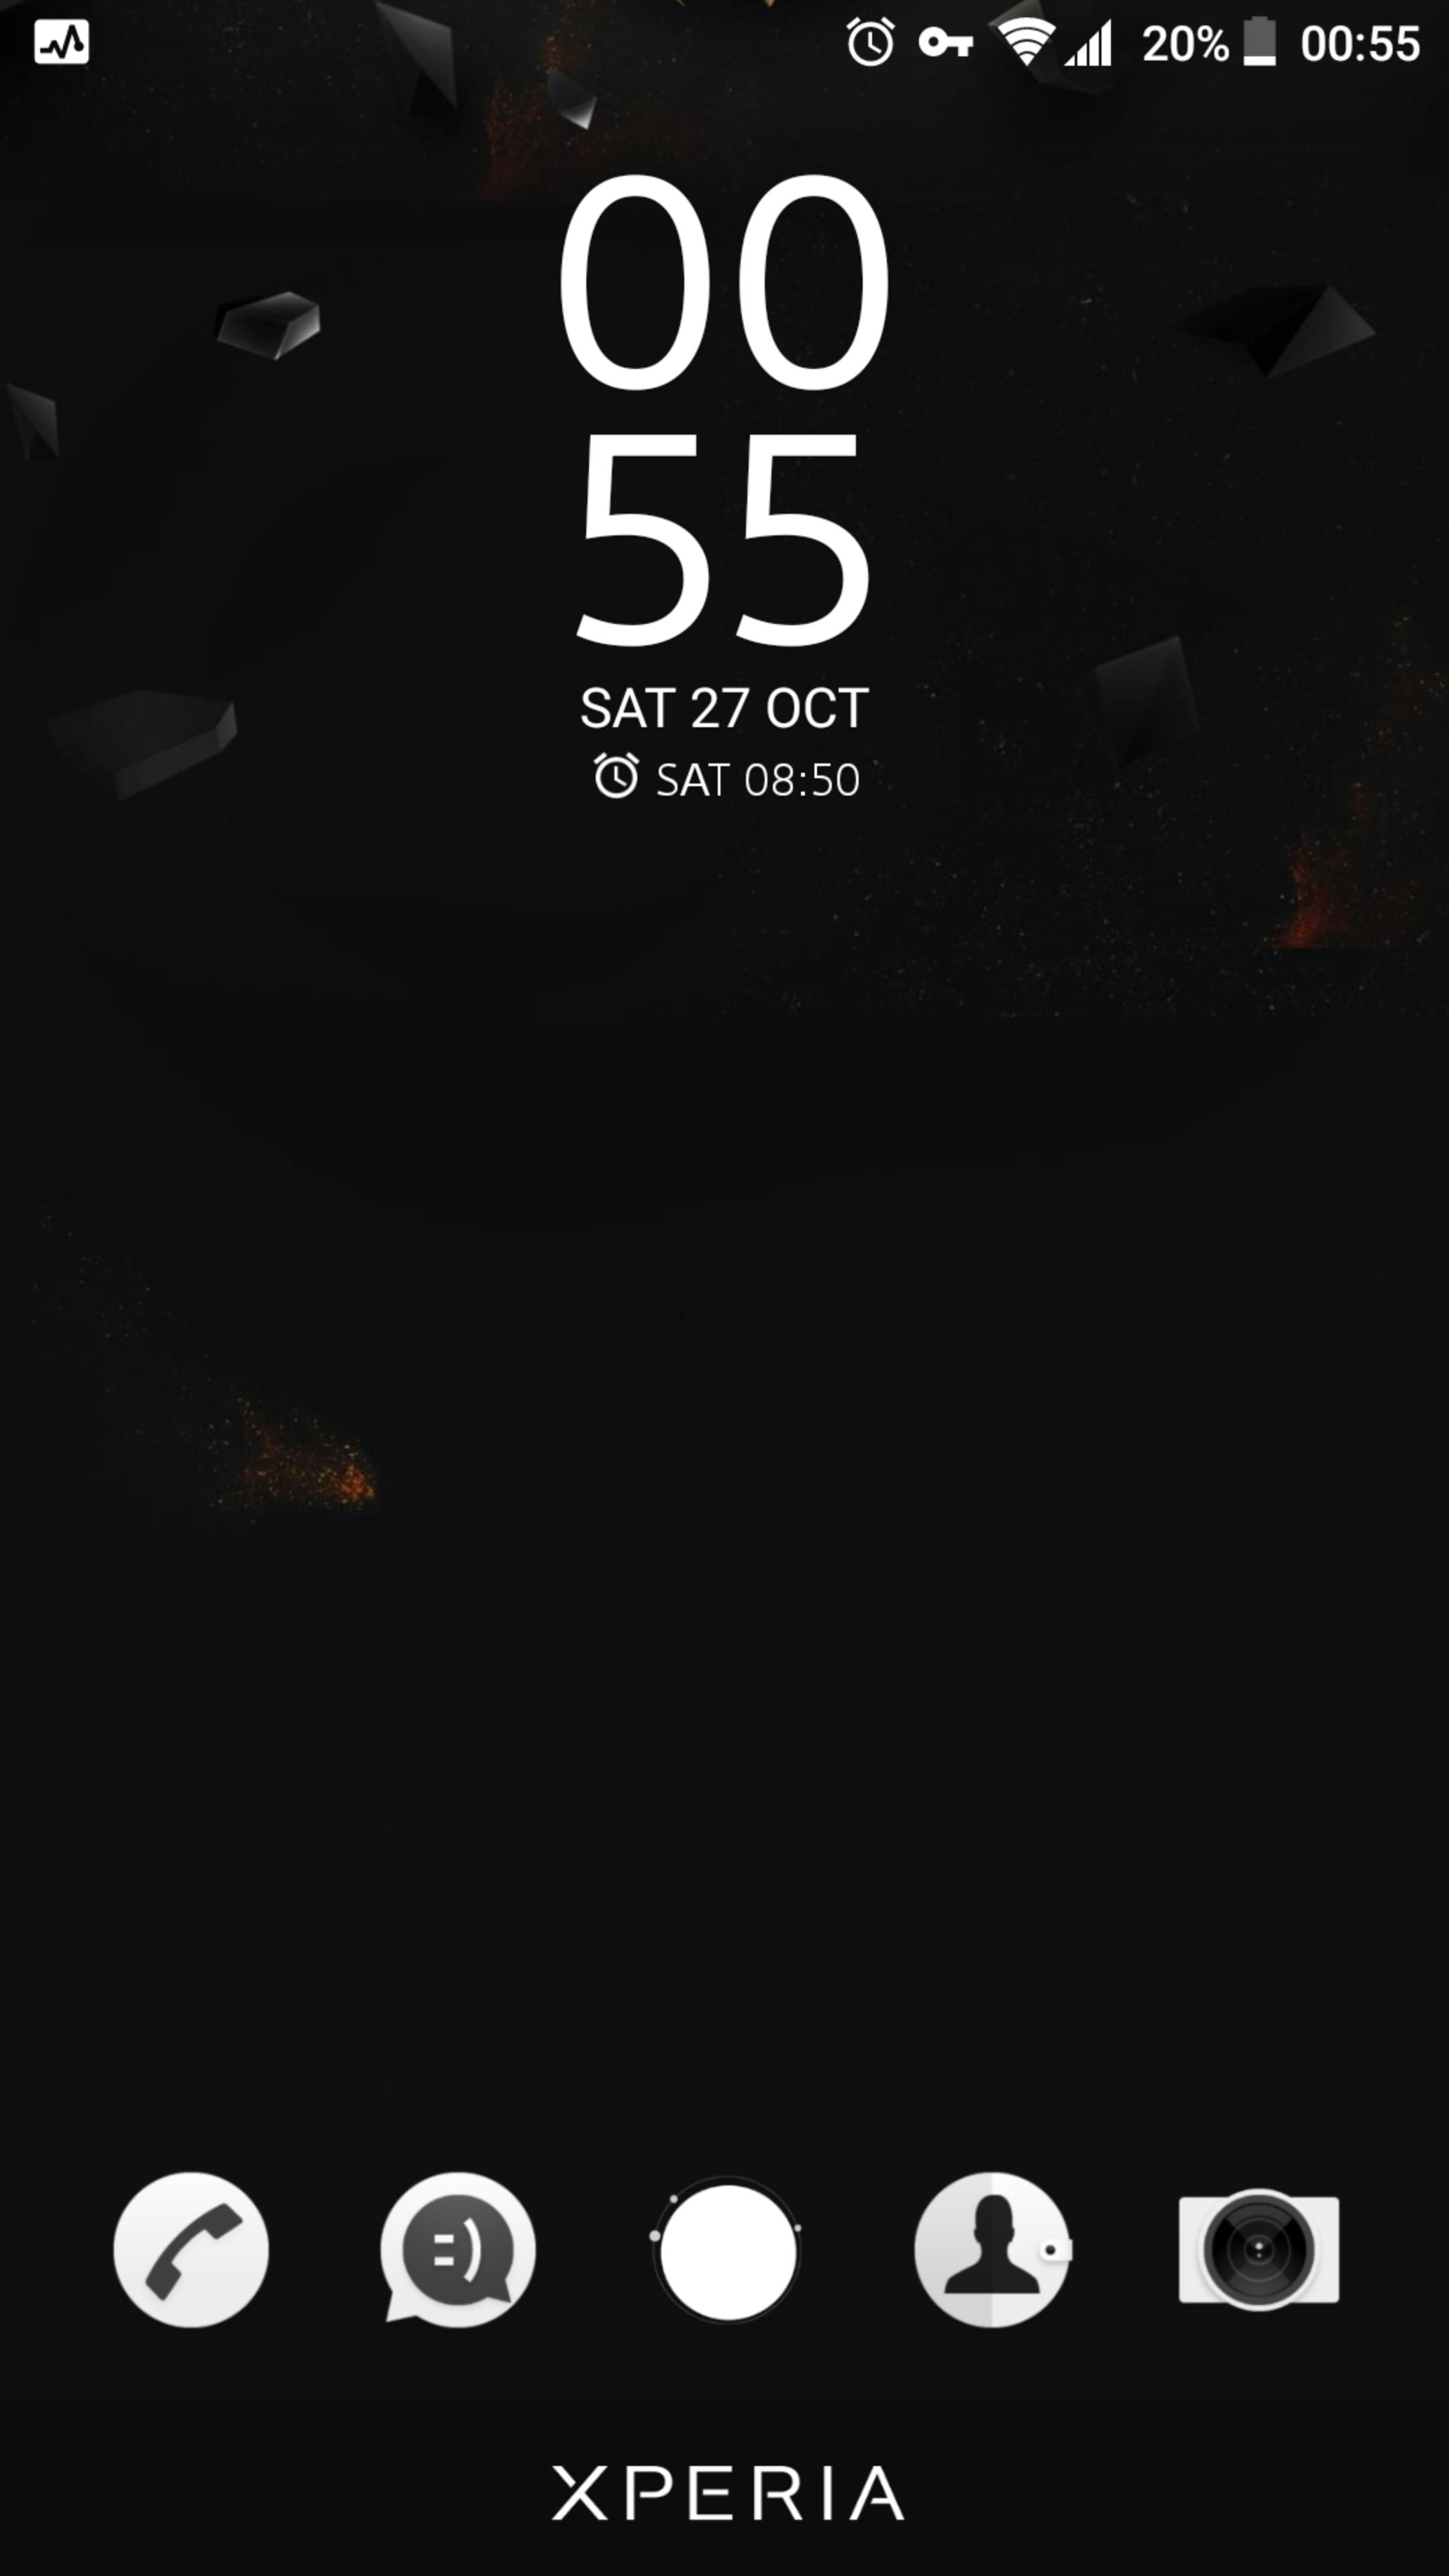 Pure Black Sony Xperia Theme For Android Apk Download